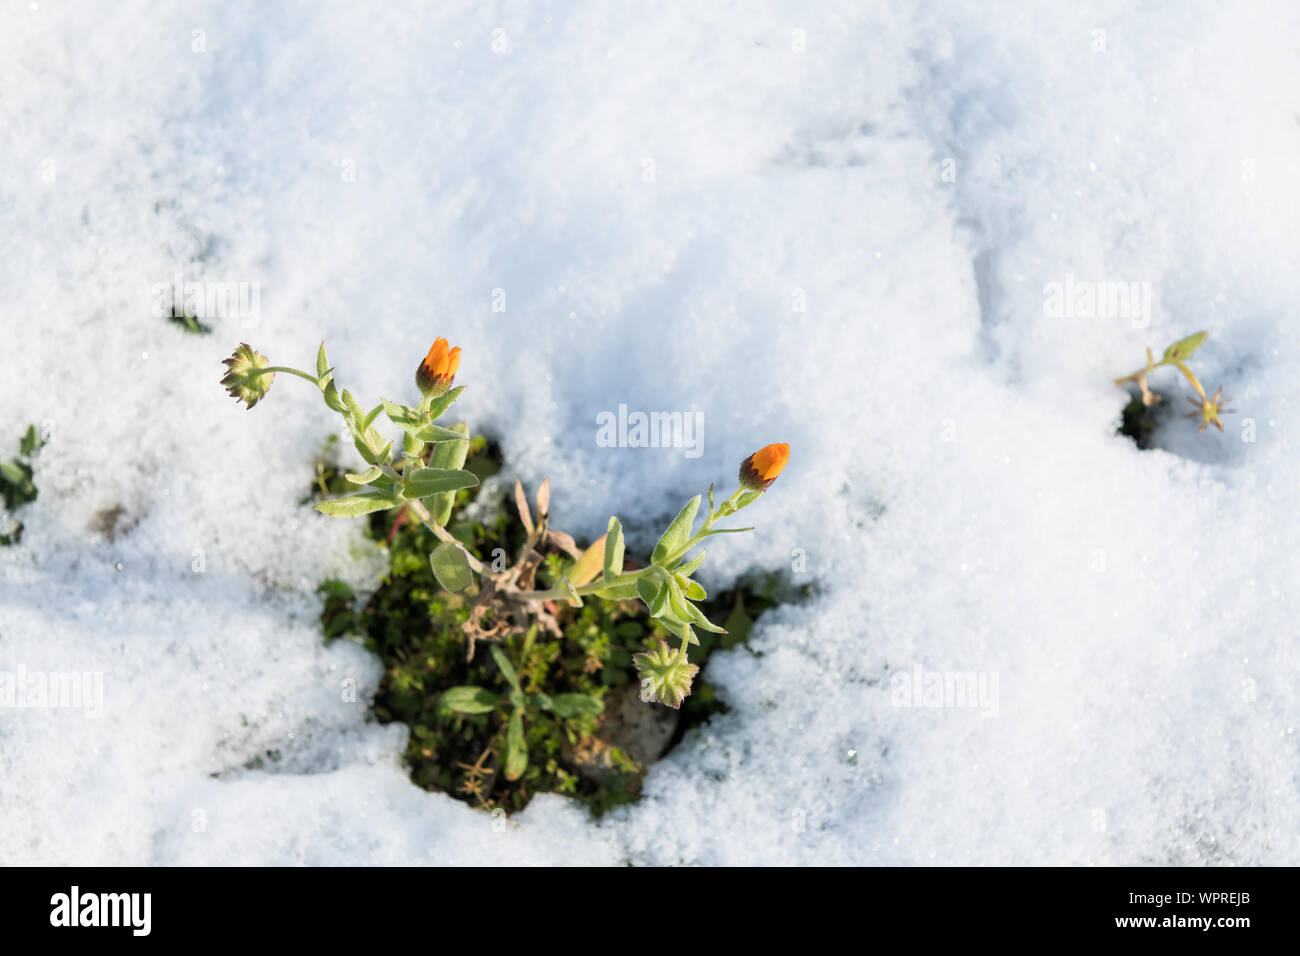 frozen marigold under the snow in a field a day of snow in salento an unusual winter in puglia selective focus WPREJB